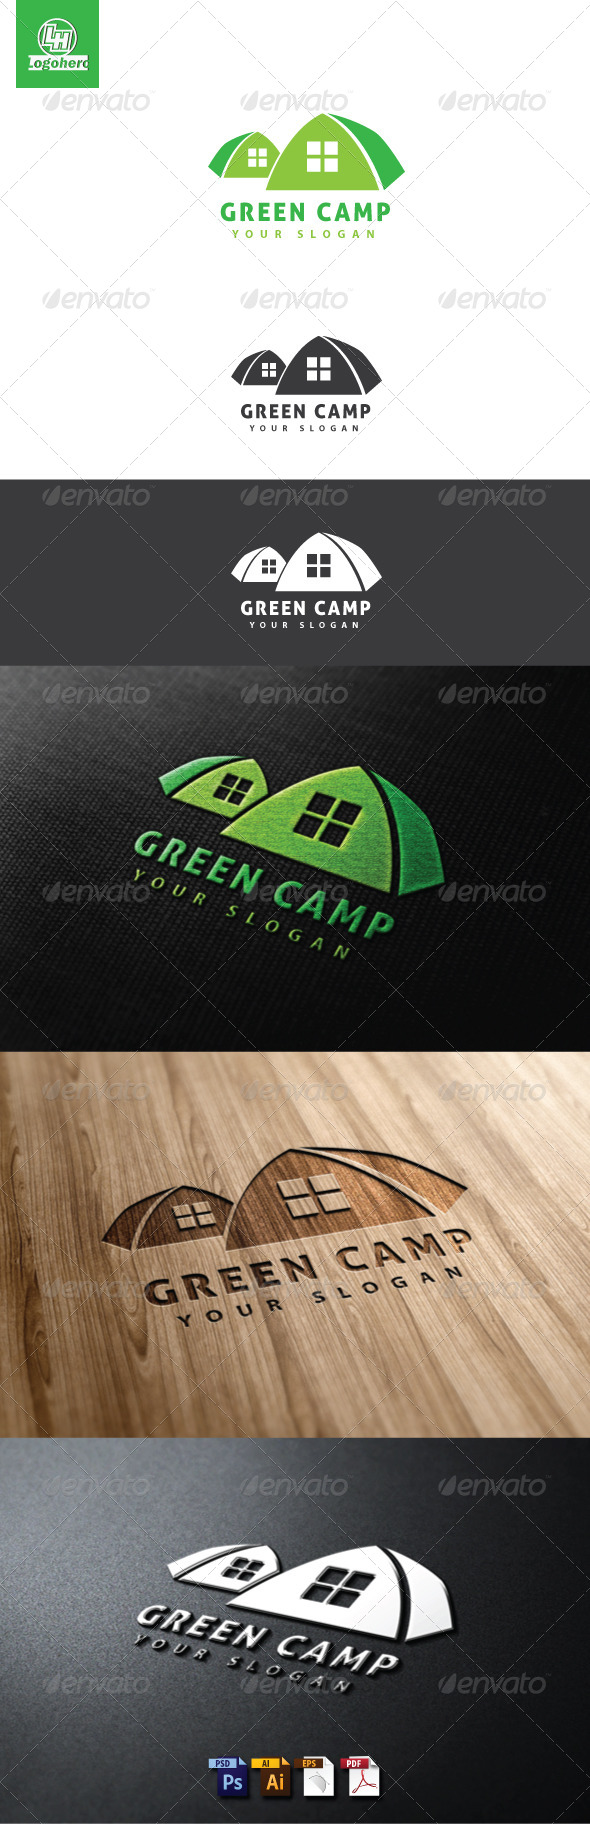 GraphicRiver Green Camp Logo Template 4623604